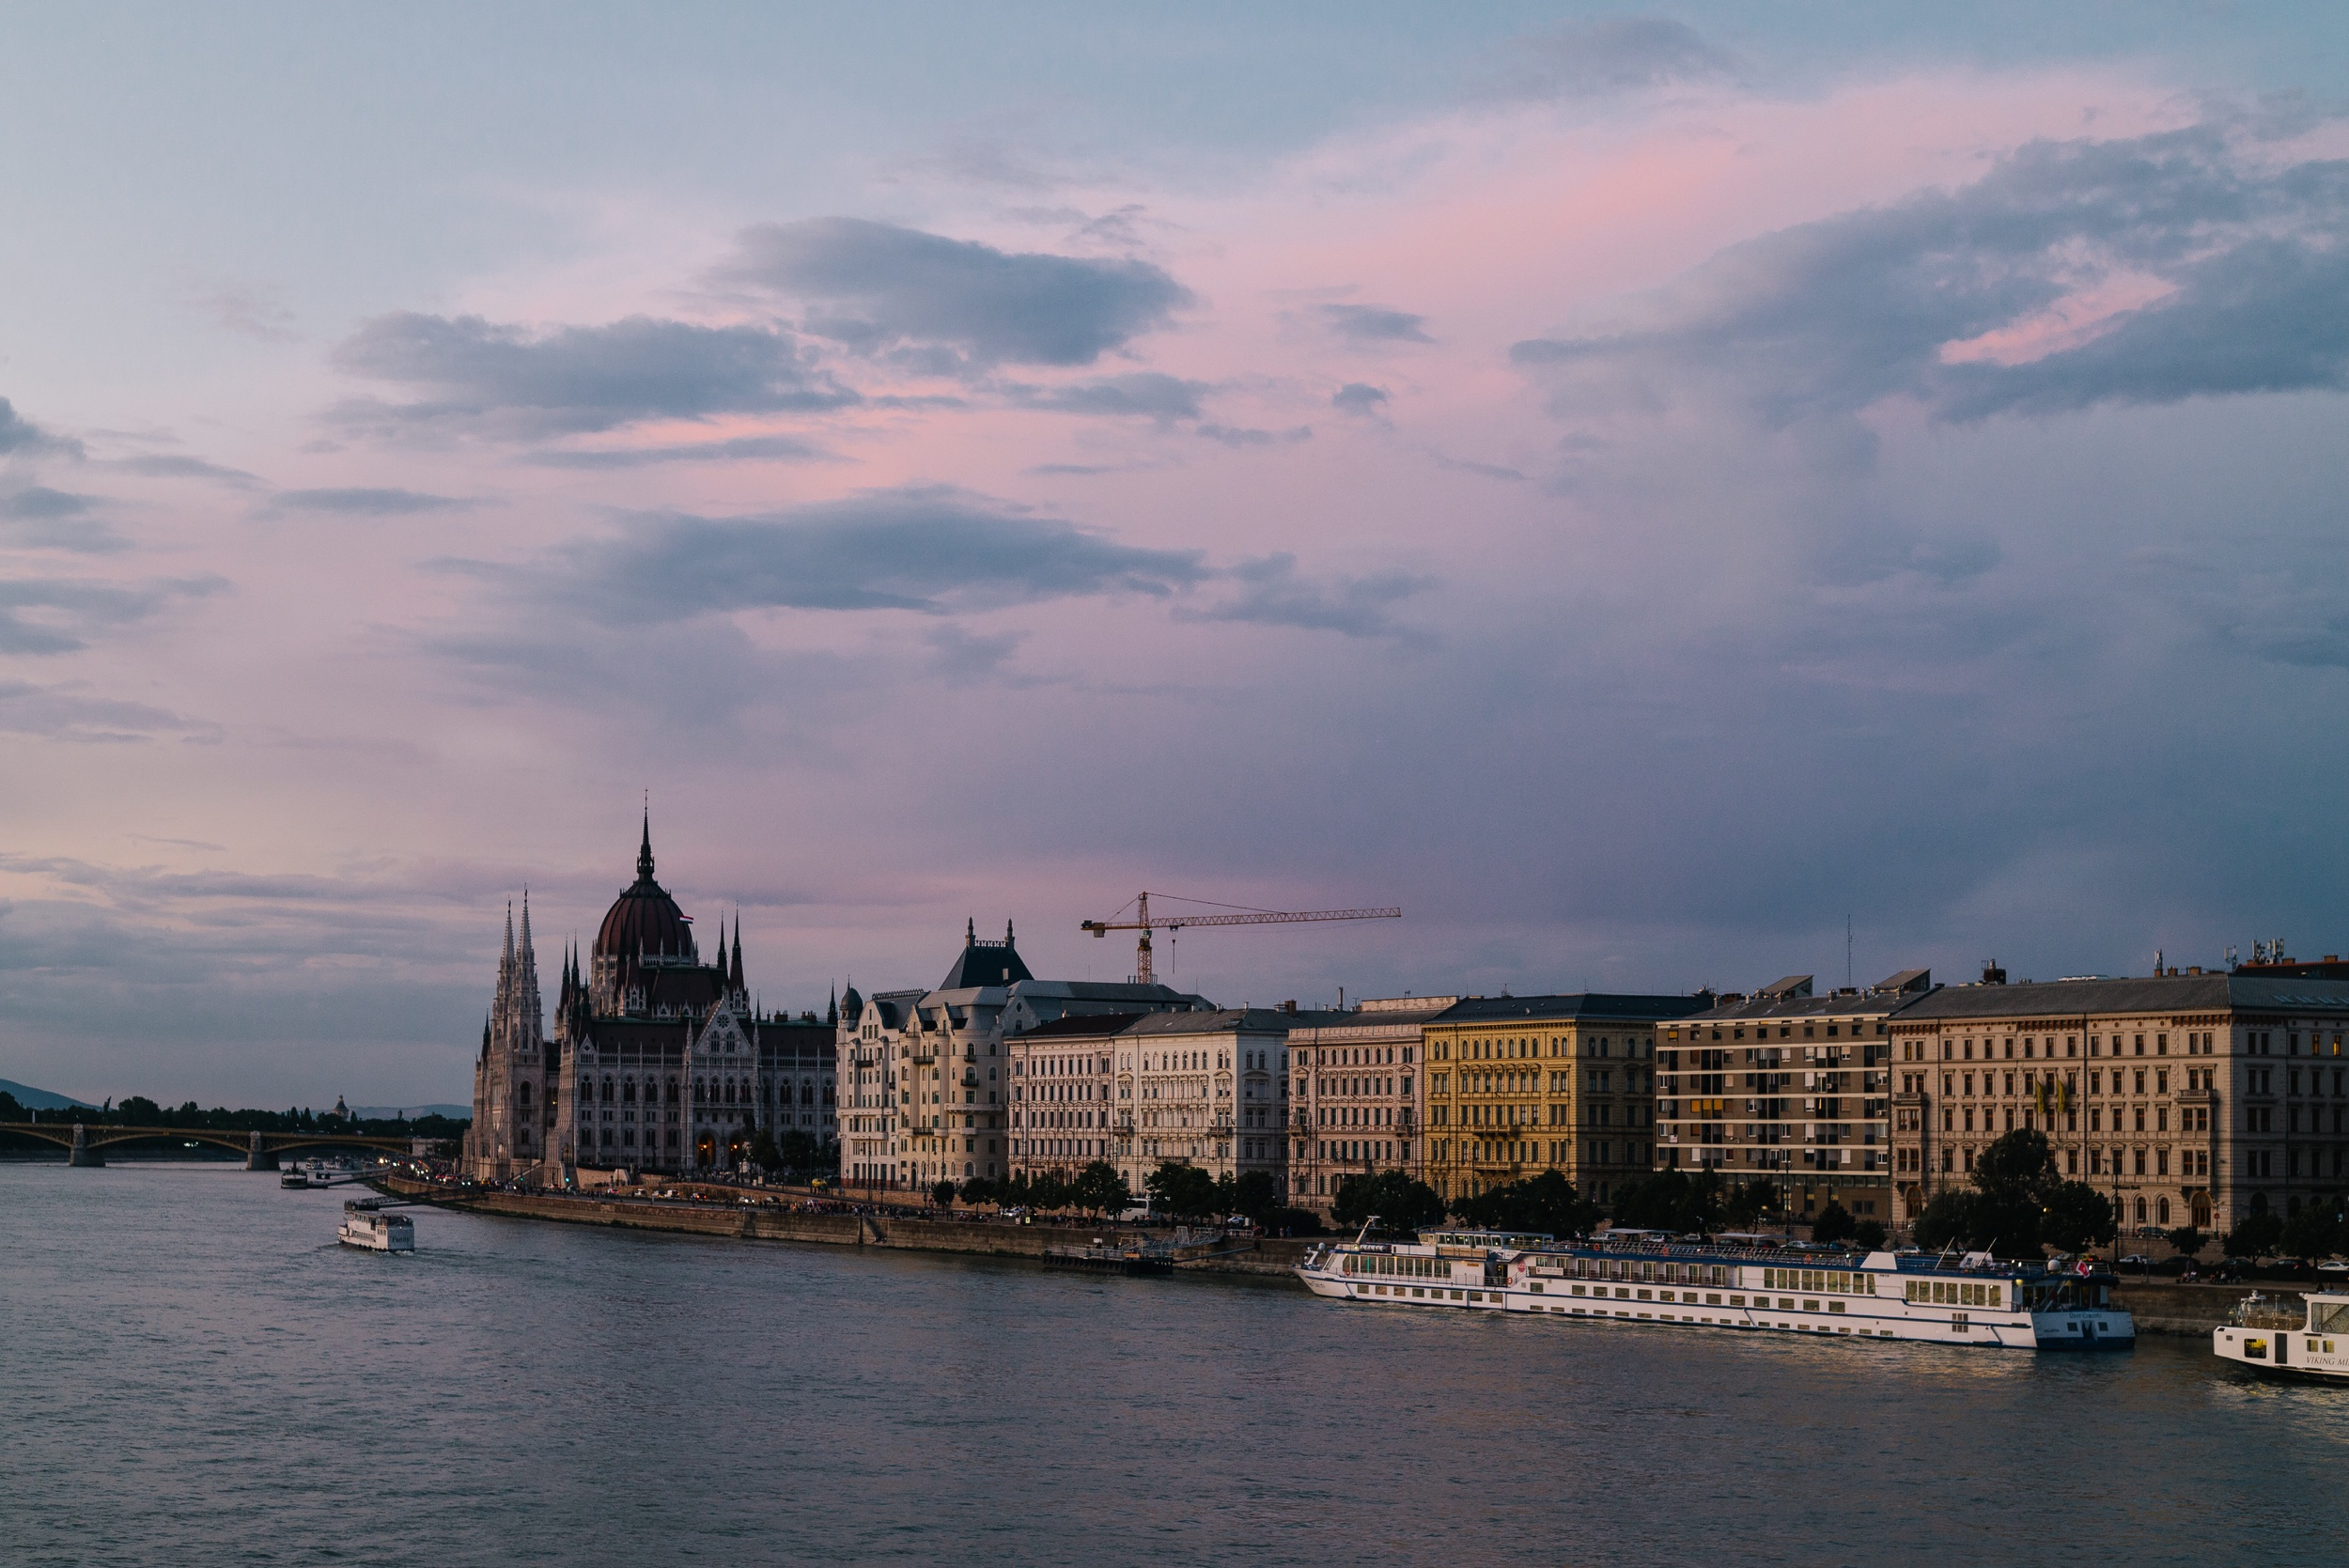 Parliament of Budapest - Clifford Darby 2019